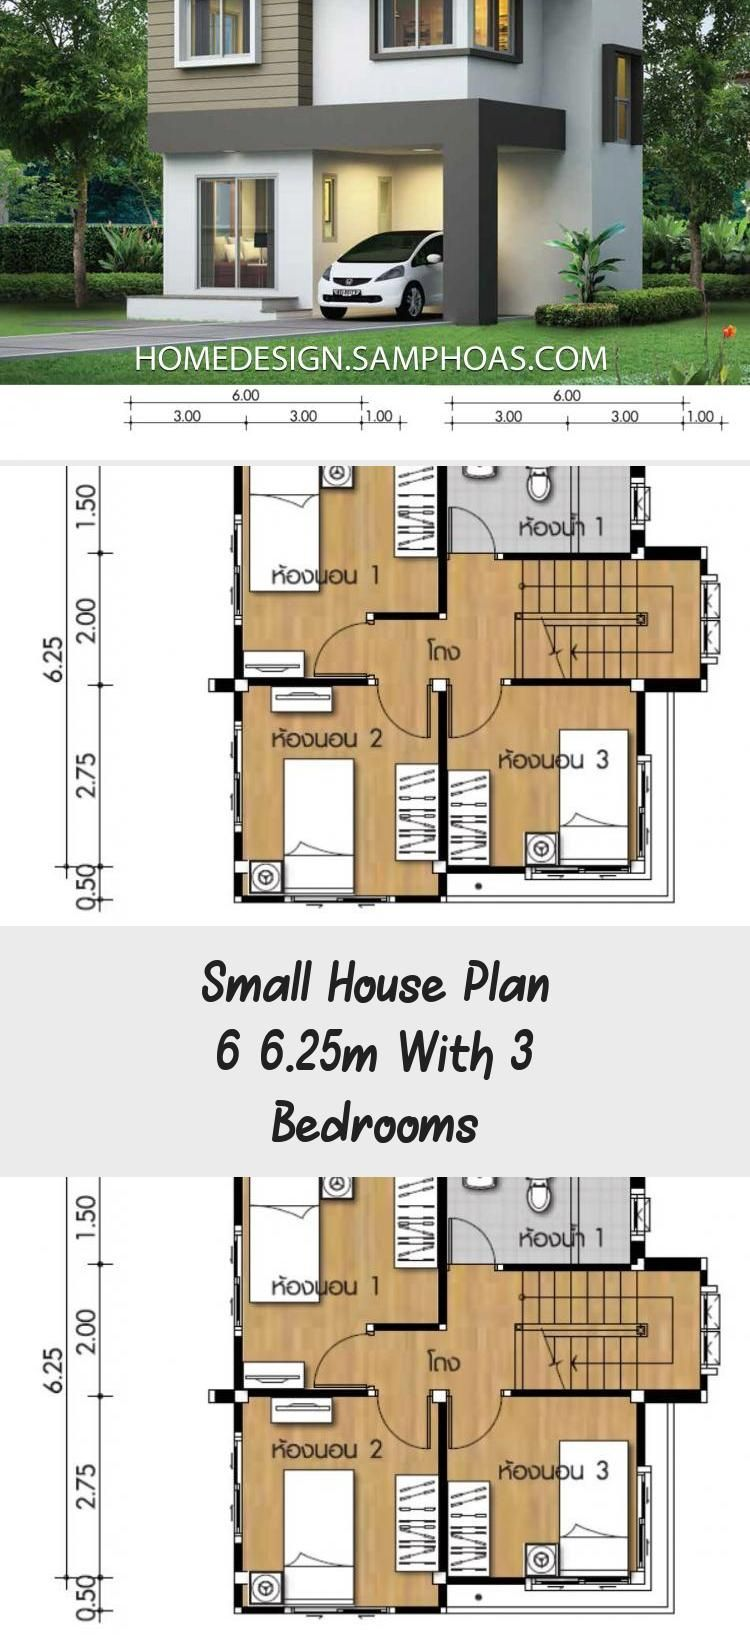 Small House Plan 6x6 25m With 3 Bedrooms Home Ideassearch Cottagehouseplans 1800sqfthouseplans Cabinhouse House Plans Brick House Plans Square House Plans